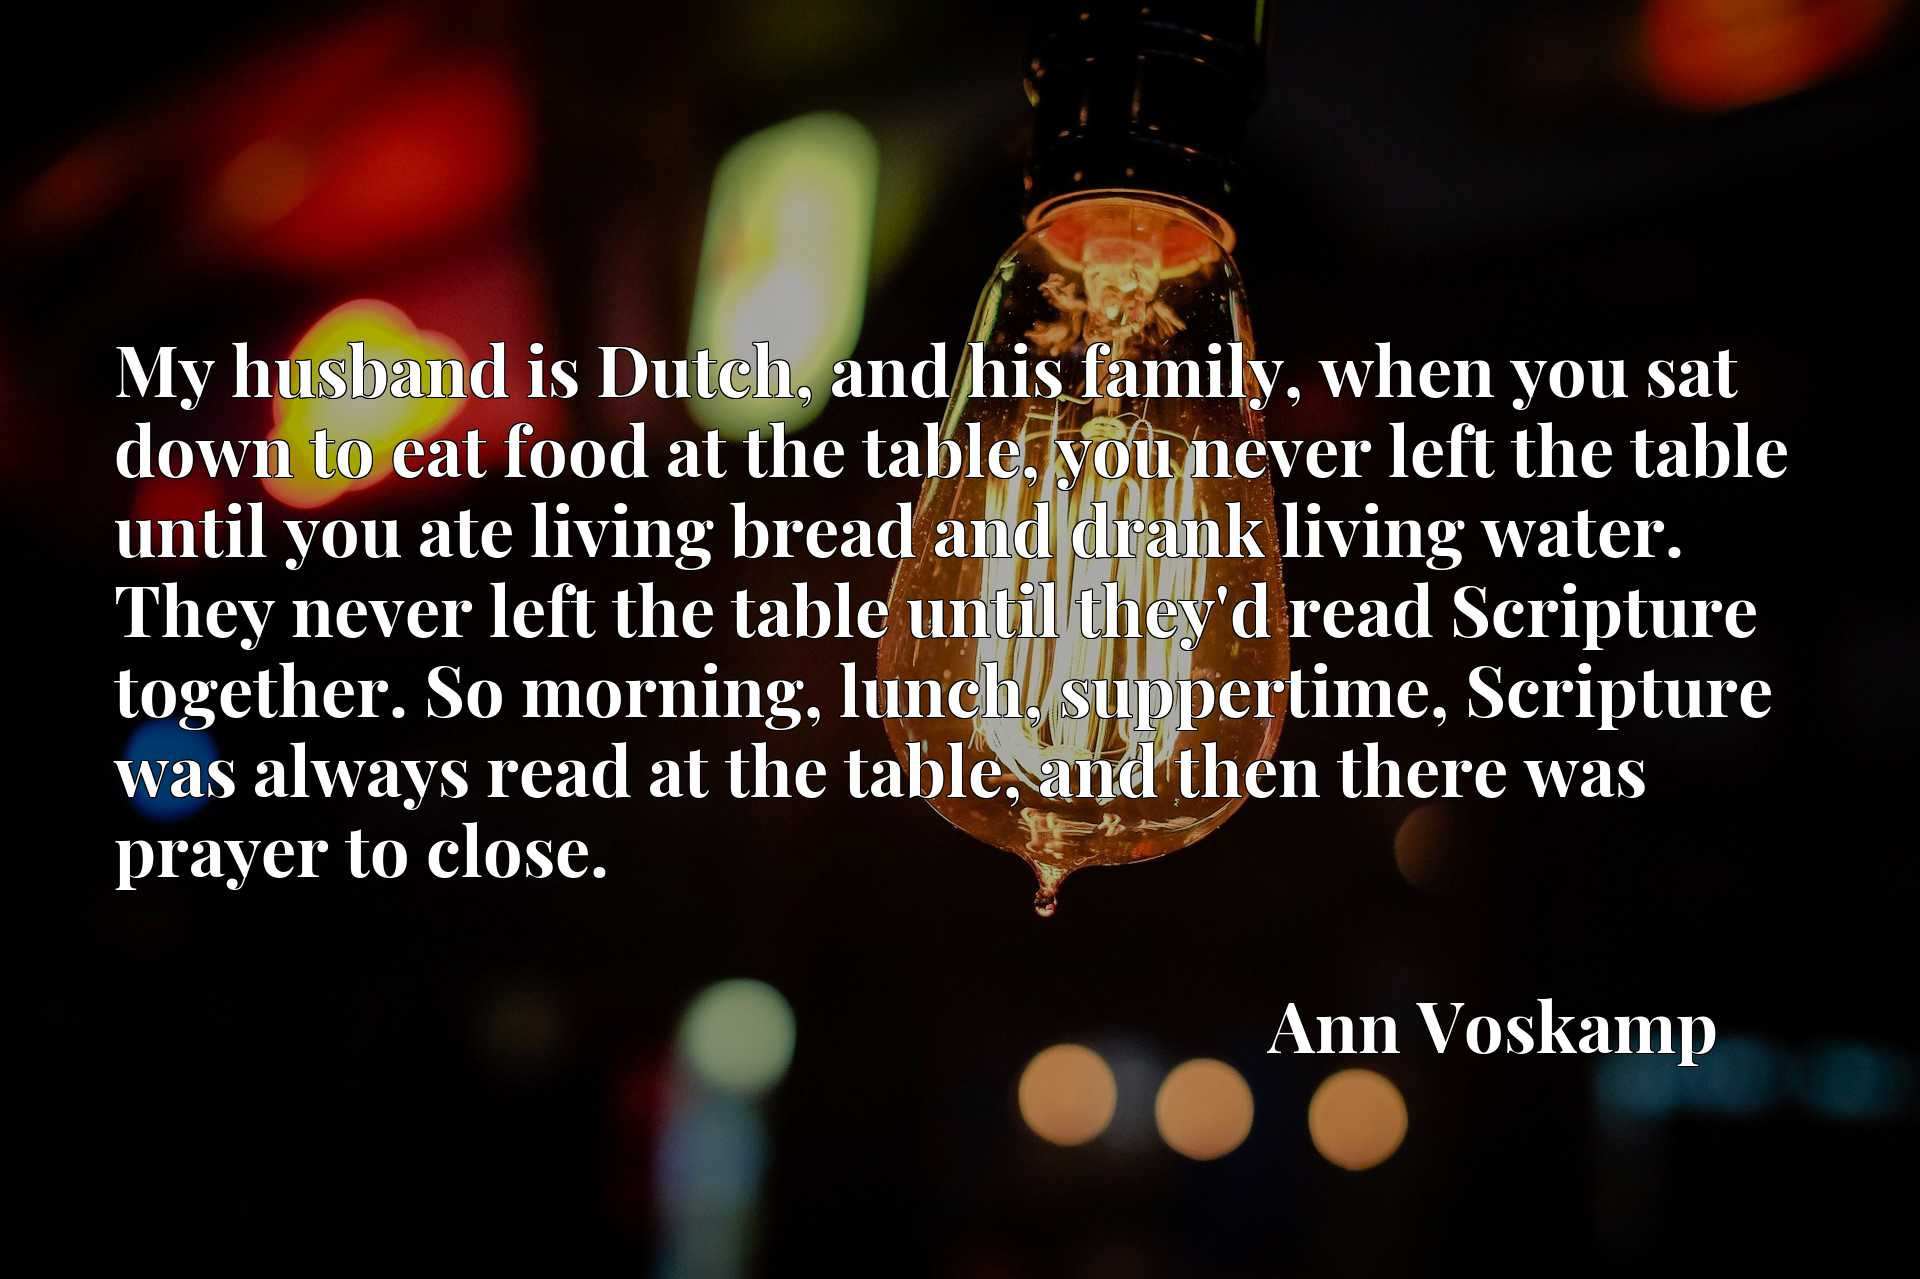 My husband is Dutch, and his family, when you sat down to eat food at the table, you never left the table until you ate living bread and drank living water. They never left the table until they'd read Scripture together. So morning, lunch, suppertime, Scripture was always read at the table, and then there was prayer to close.